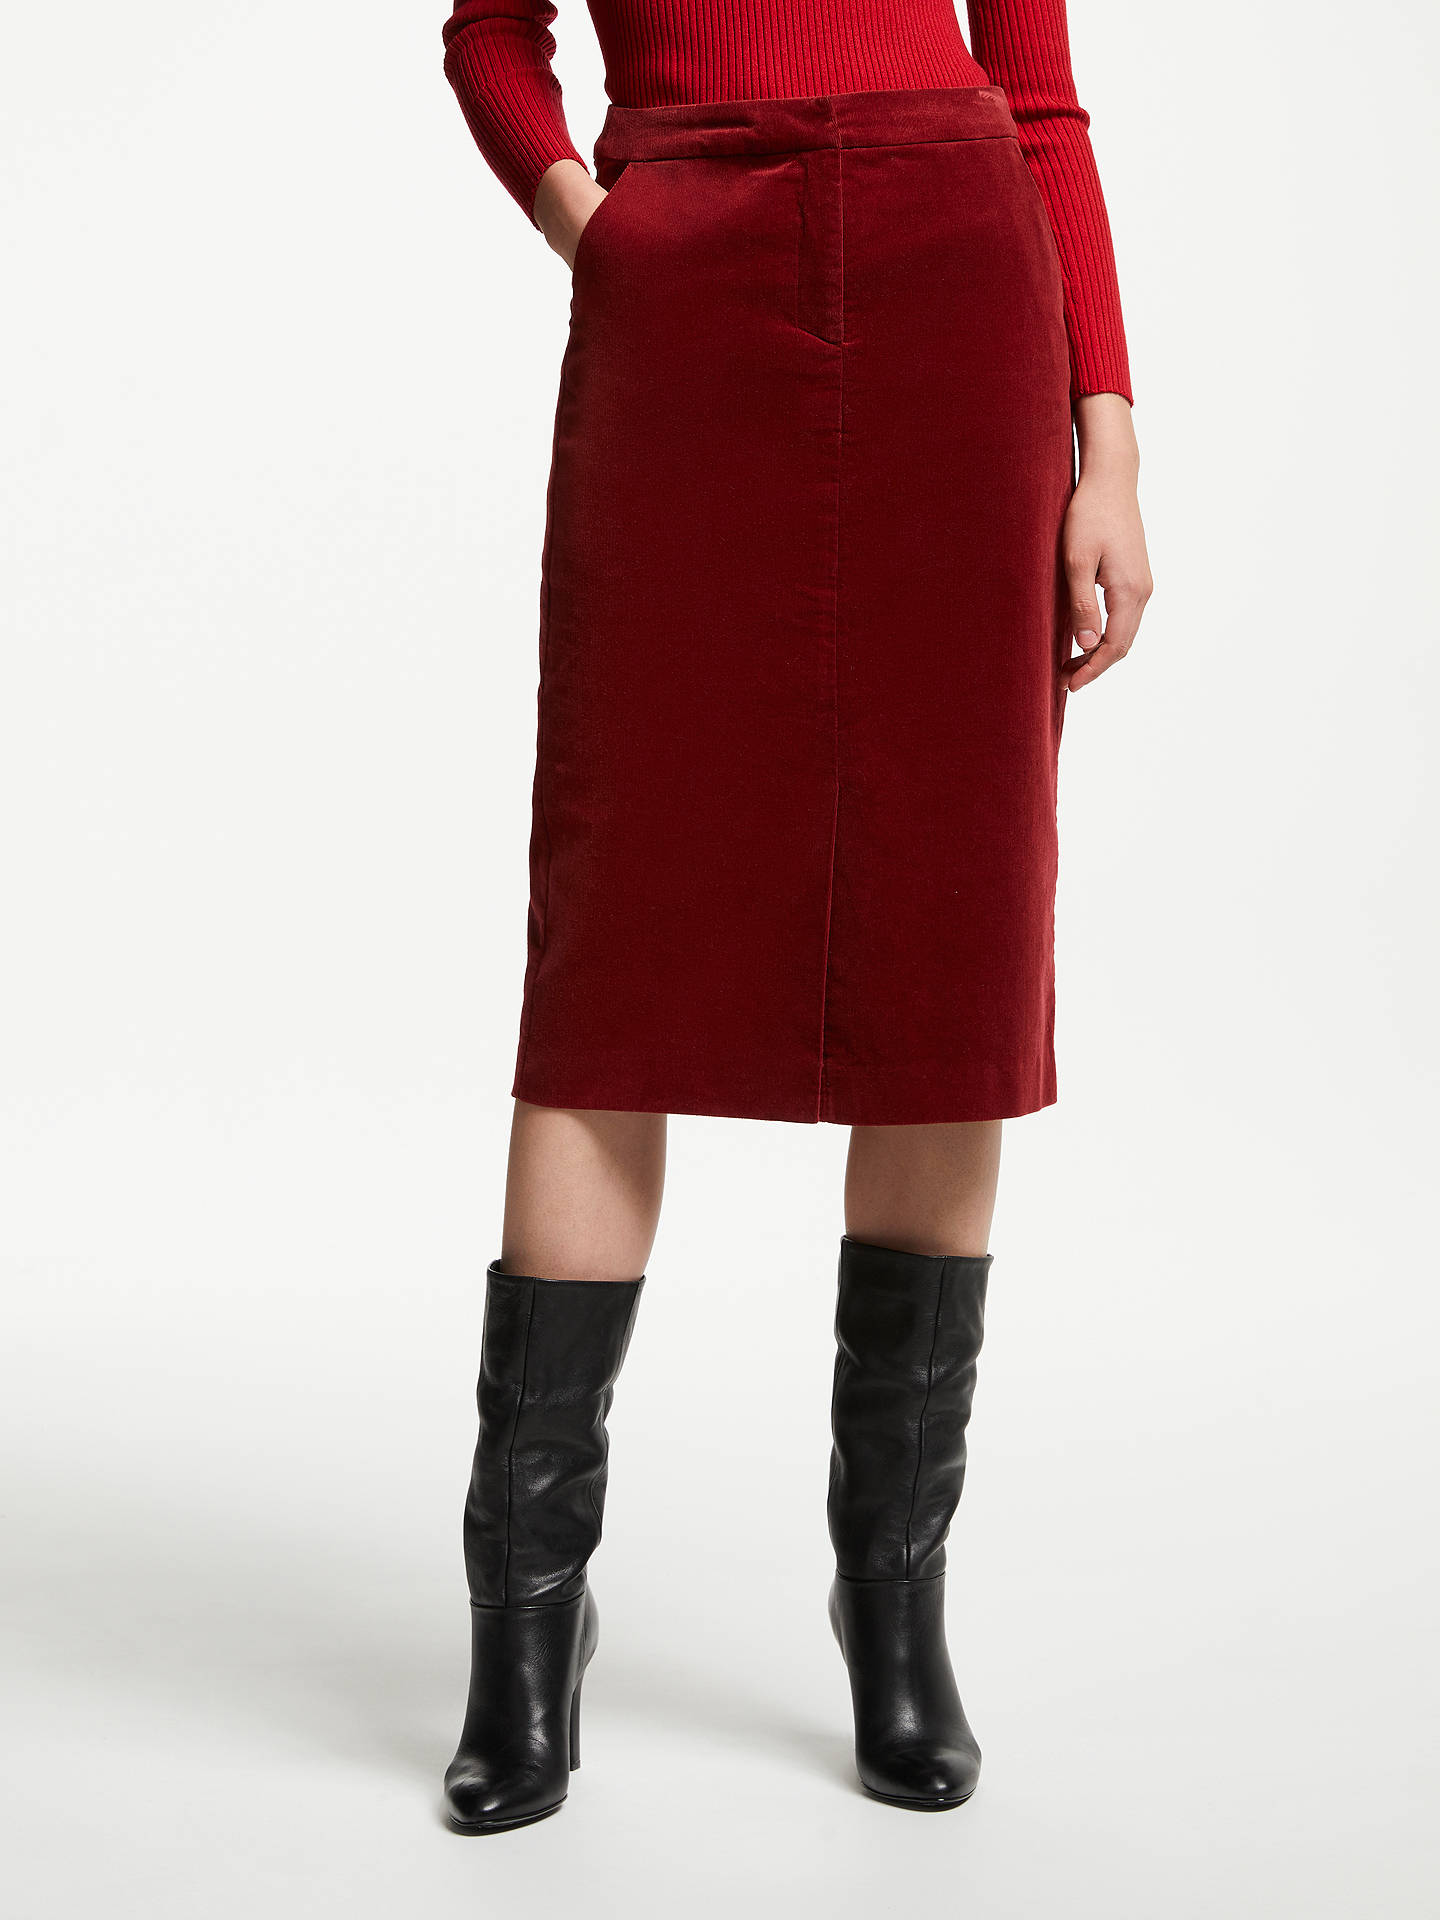 BuyJohn Lewis & Partners Cord Pencil Skirt, Paprika, 8 Online at johnlewis.com